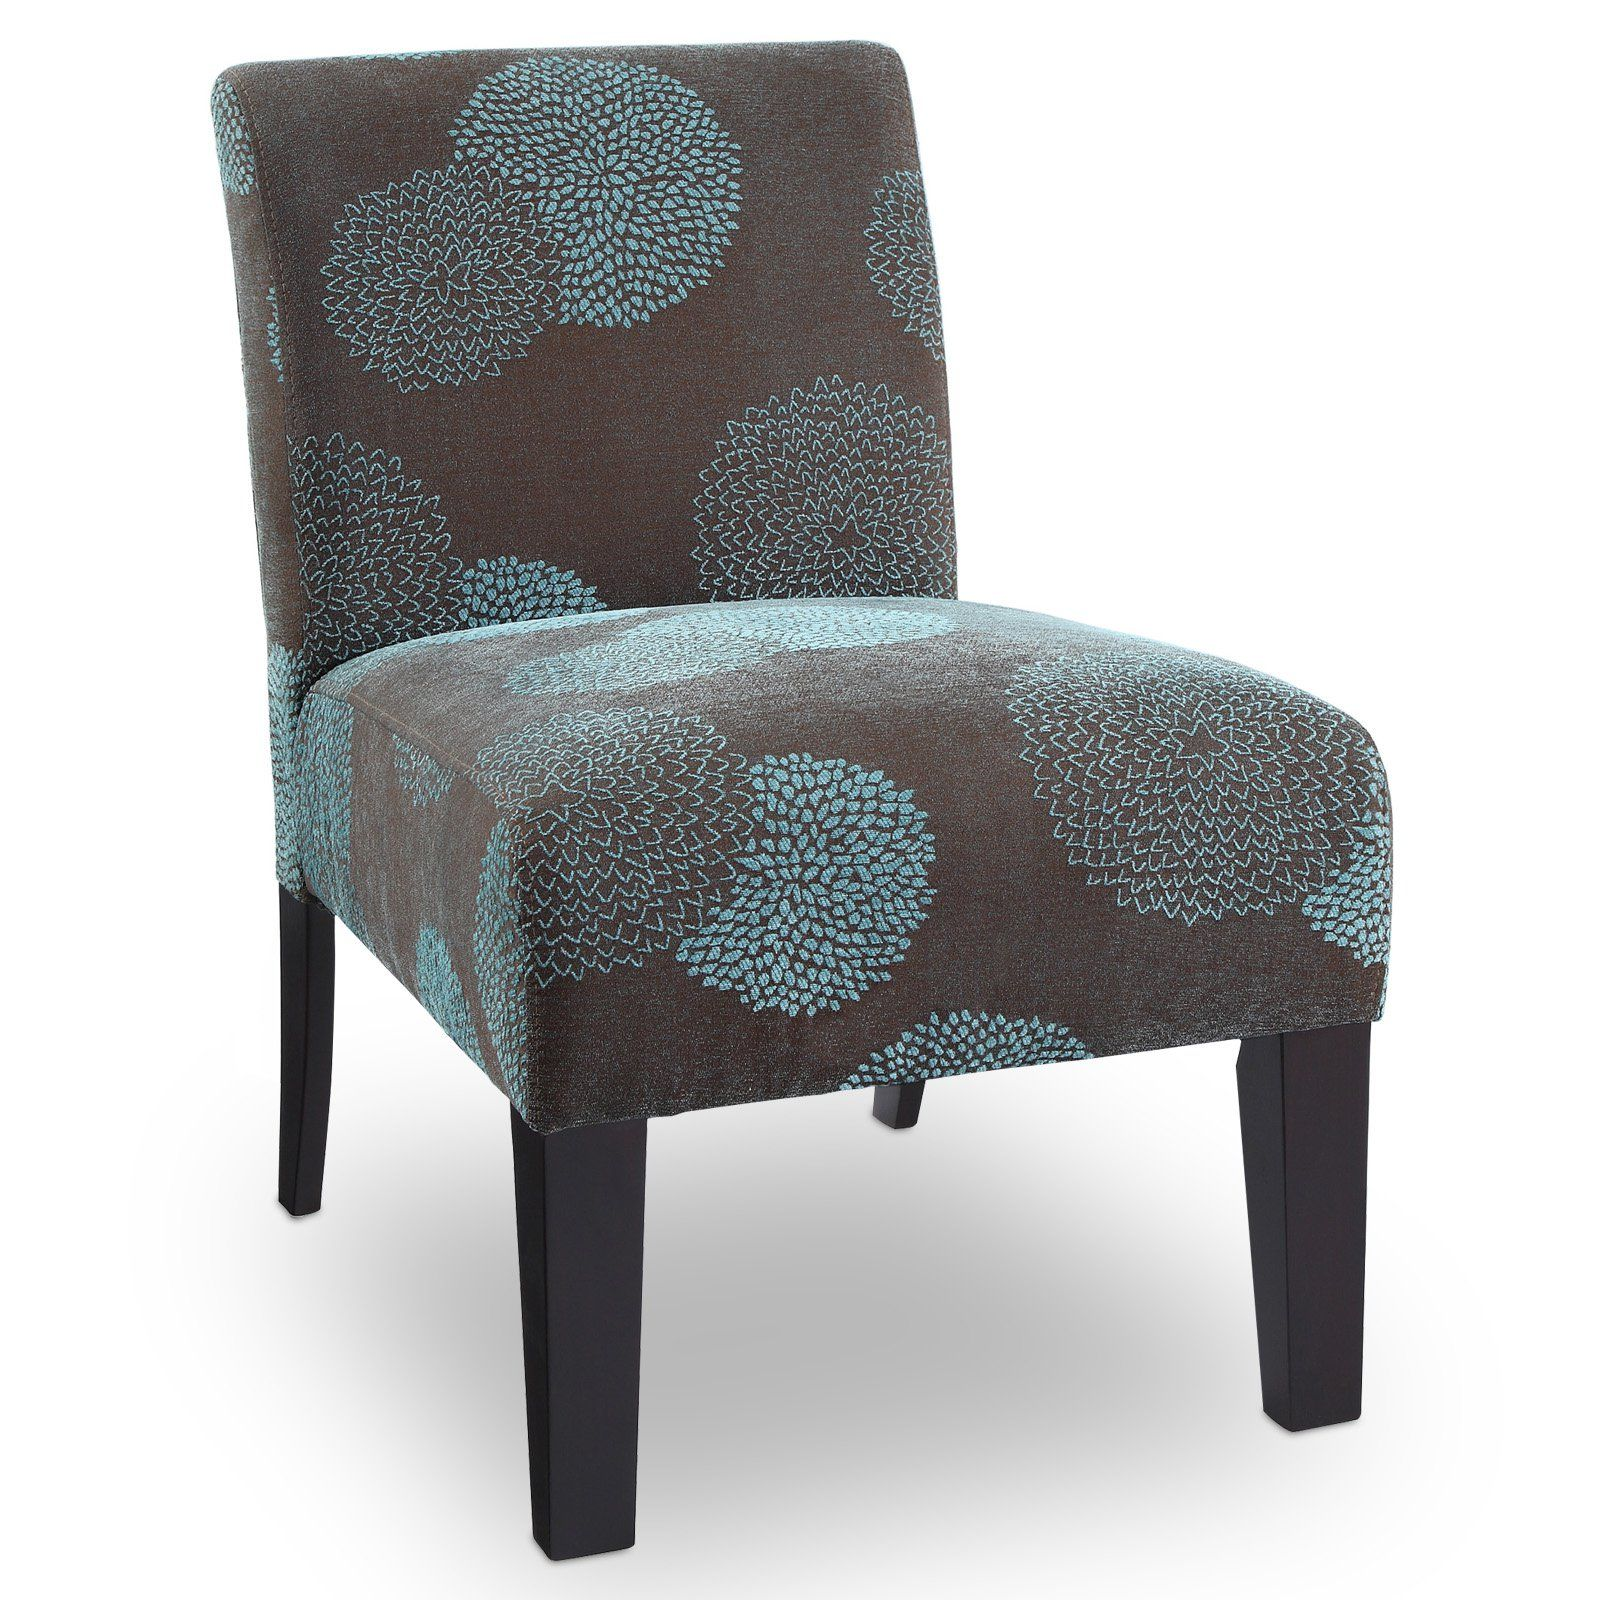 Deco Accent Chair Sunflower Blue Sunflowerbedroomideas